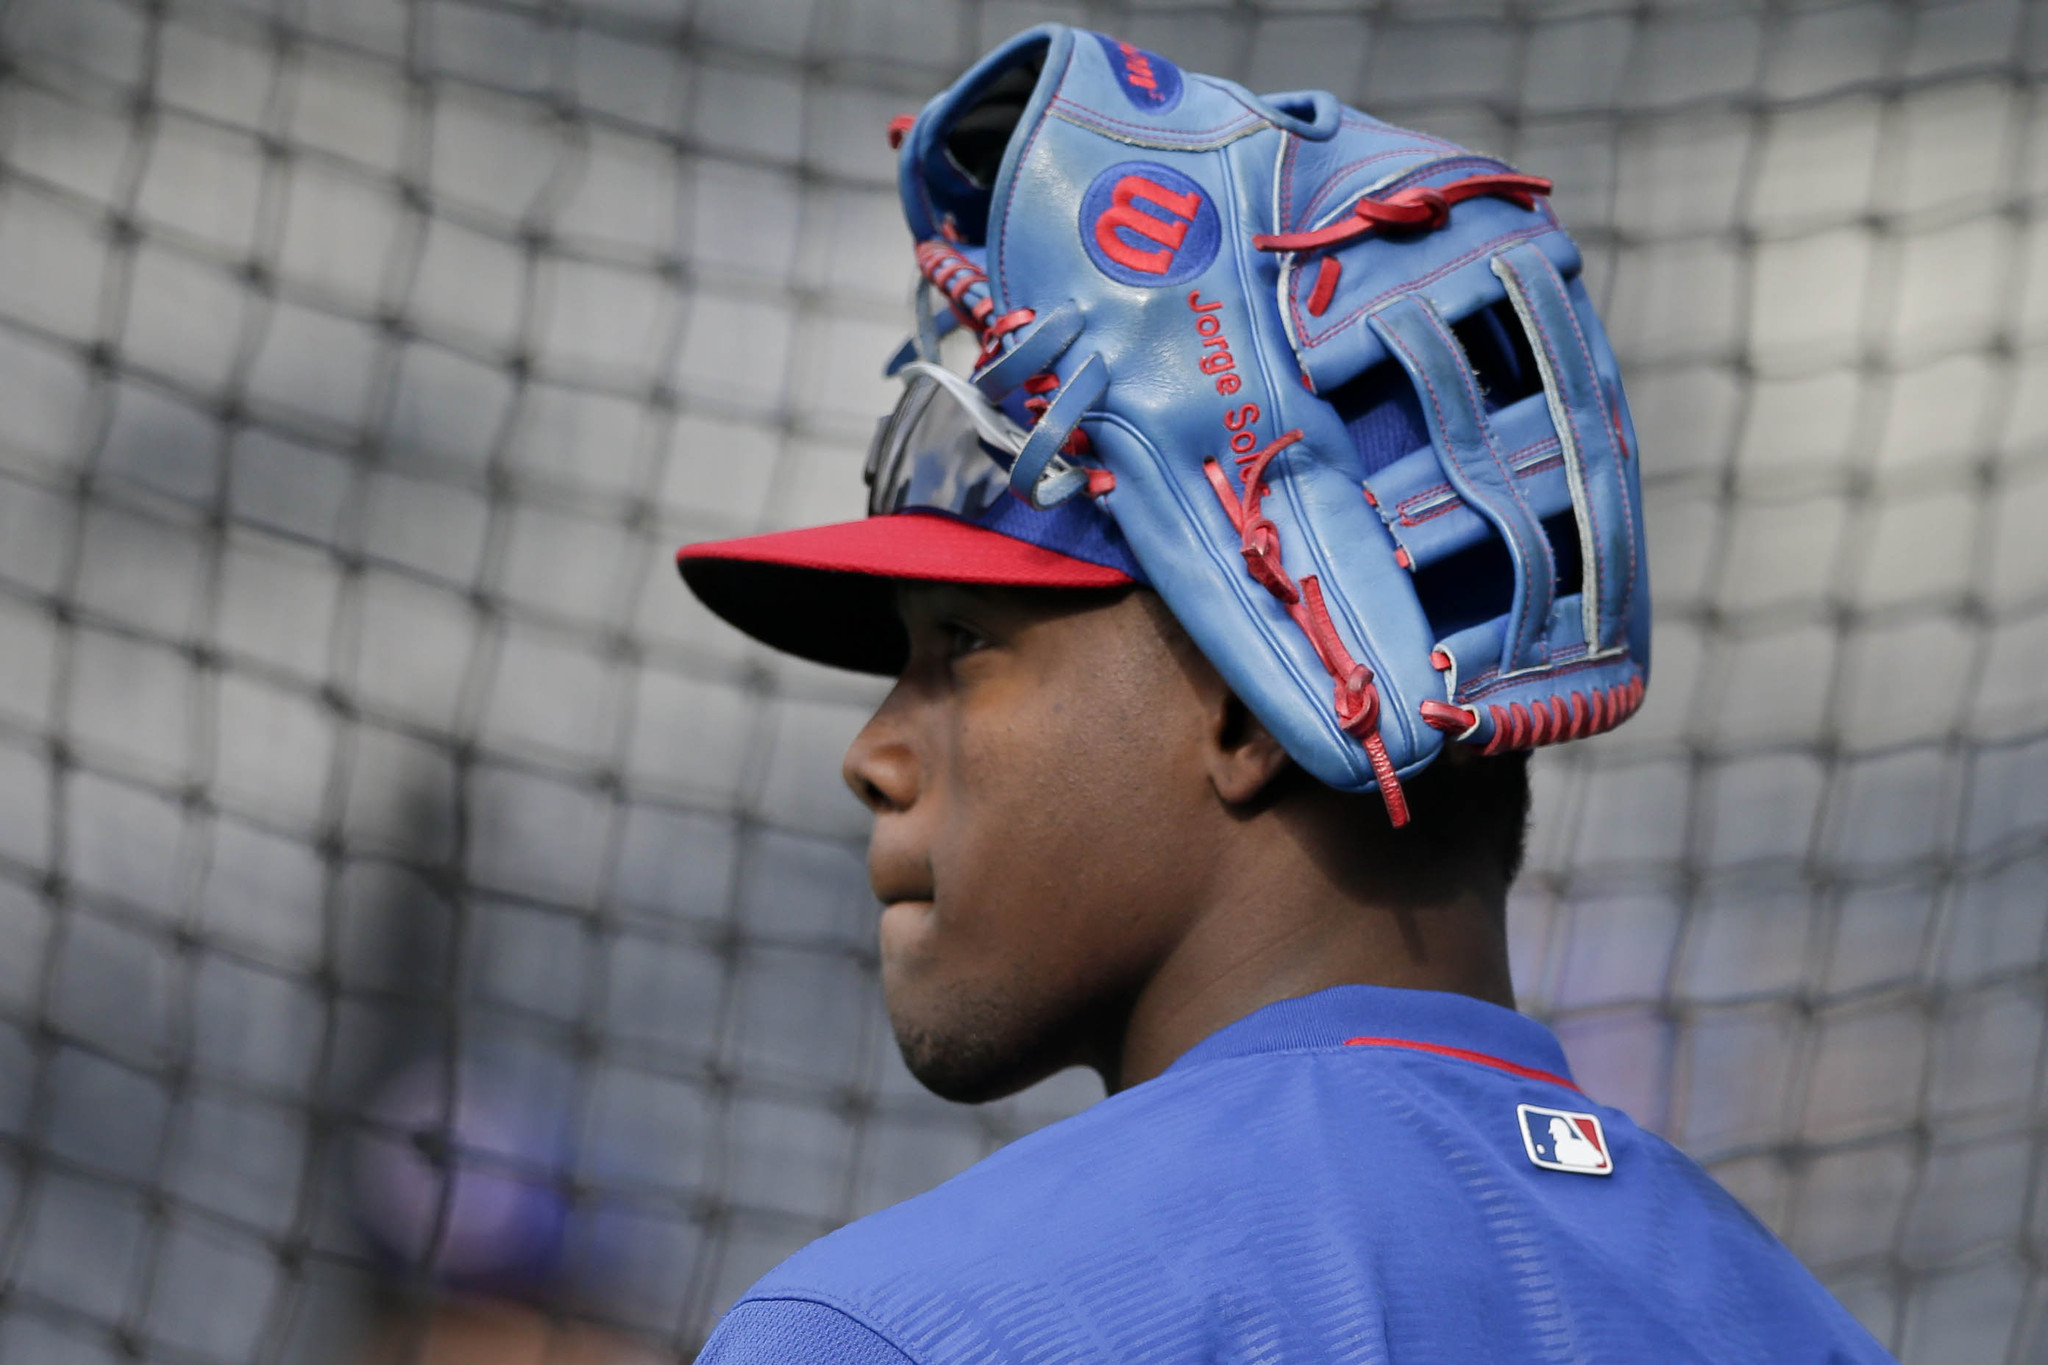 Jorge Soler, Chris Coghlan move up in Cubs' batting order